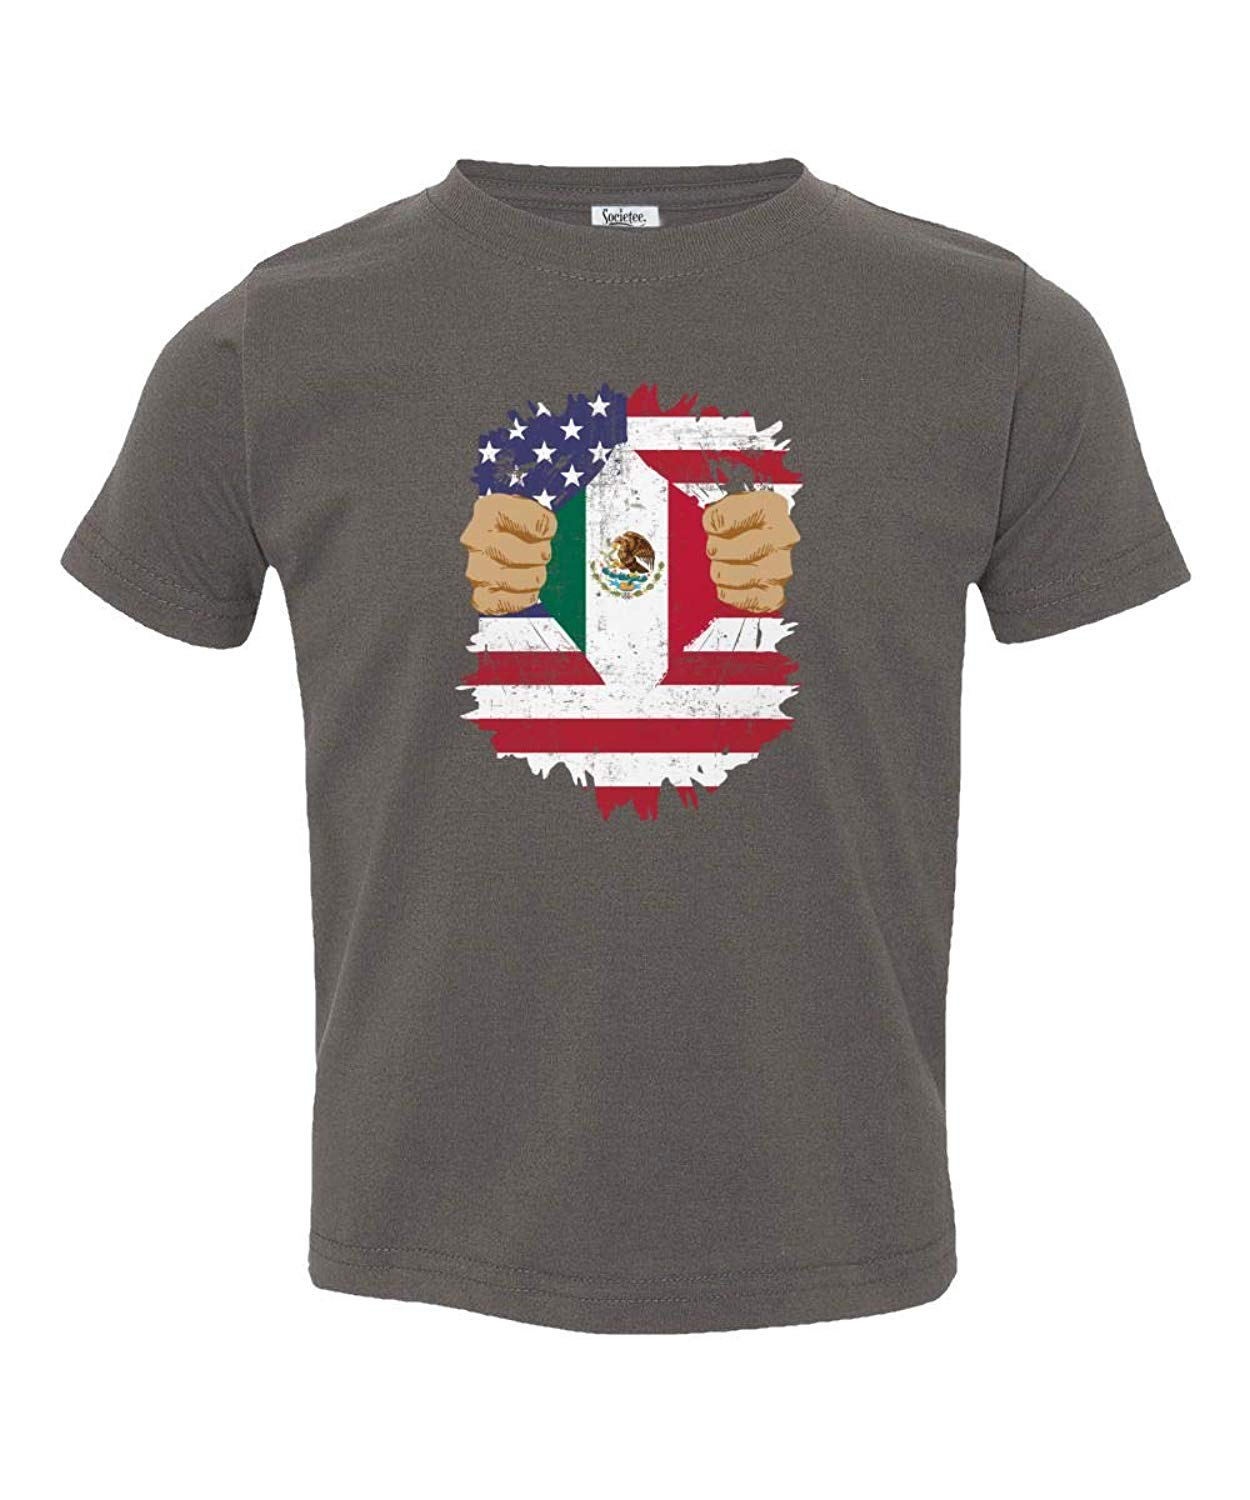 Societee Mexican American USA Mexico Pride Flag Youth & Toddler Tee Shirt